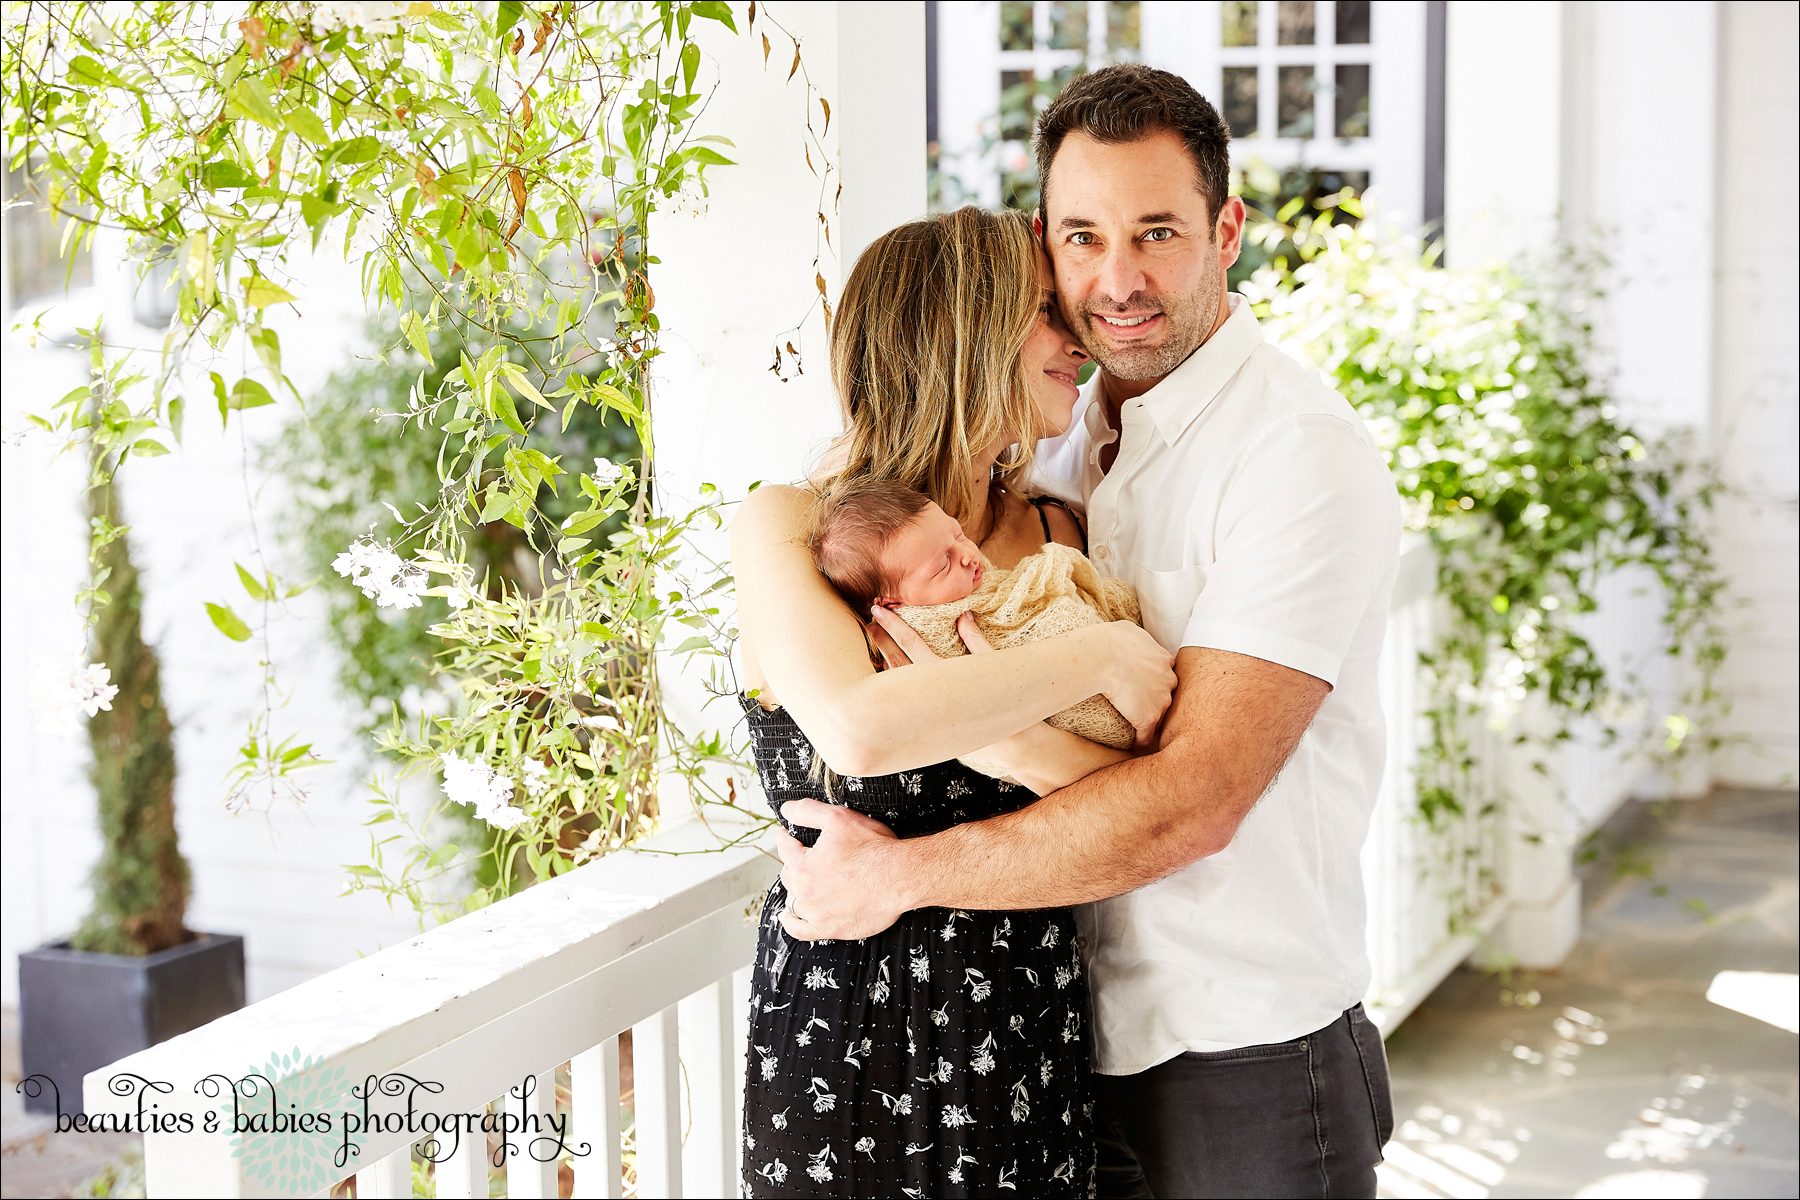 at-home newborn baby photography Los Angeles baby and family photographer